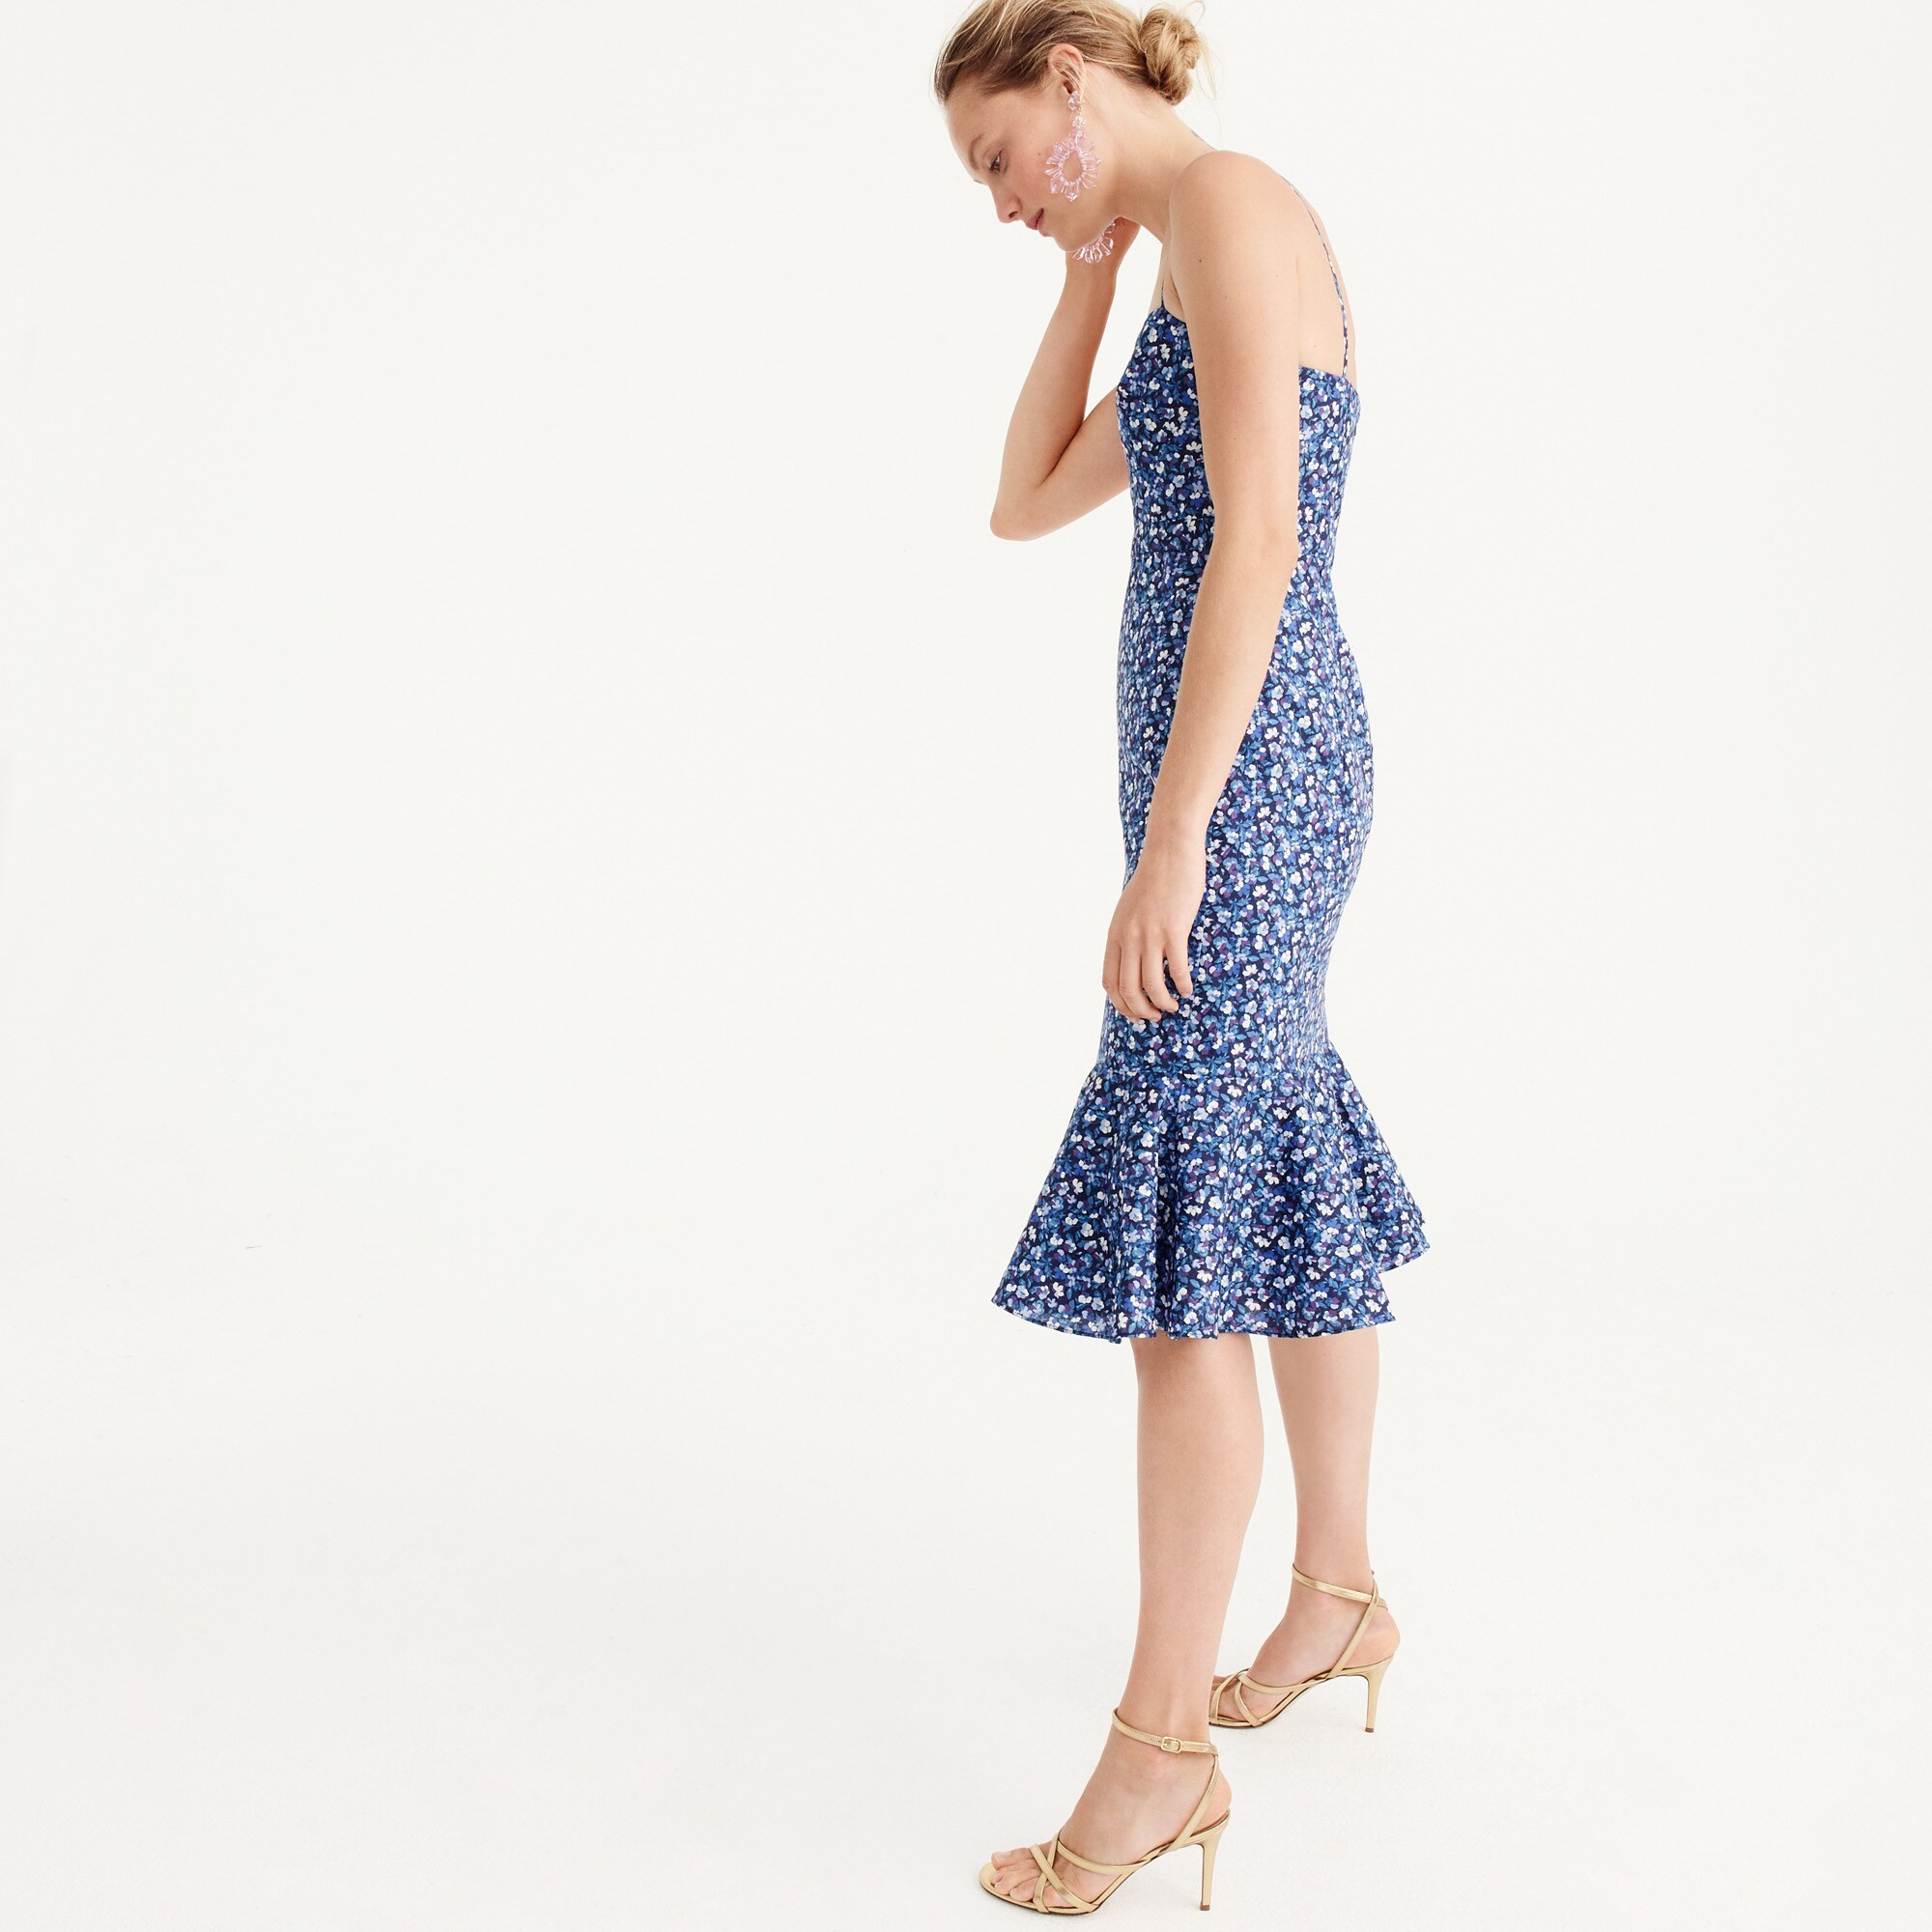 Image 5 for Ruffle-hem midi dress in Liberty® Sarah floral